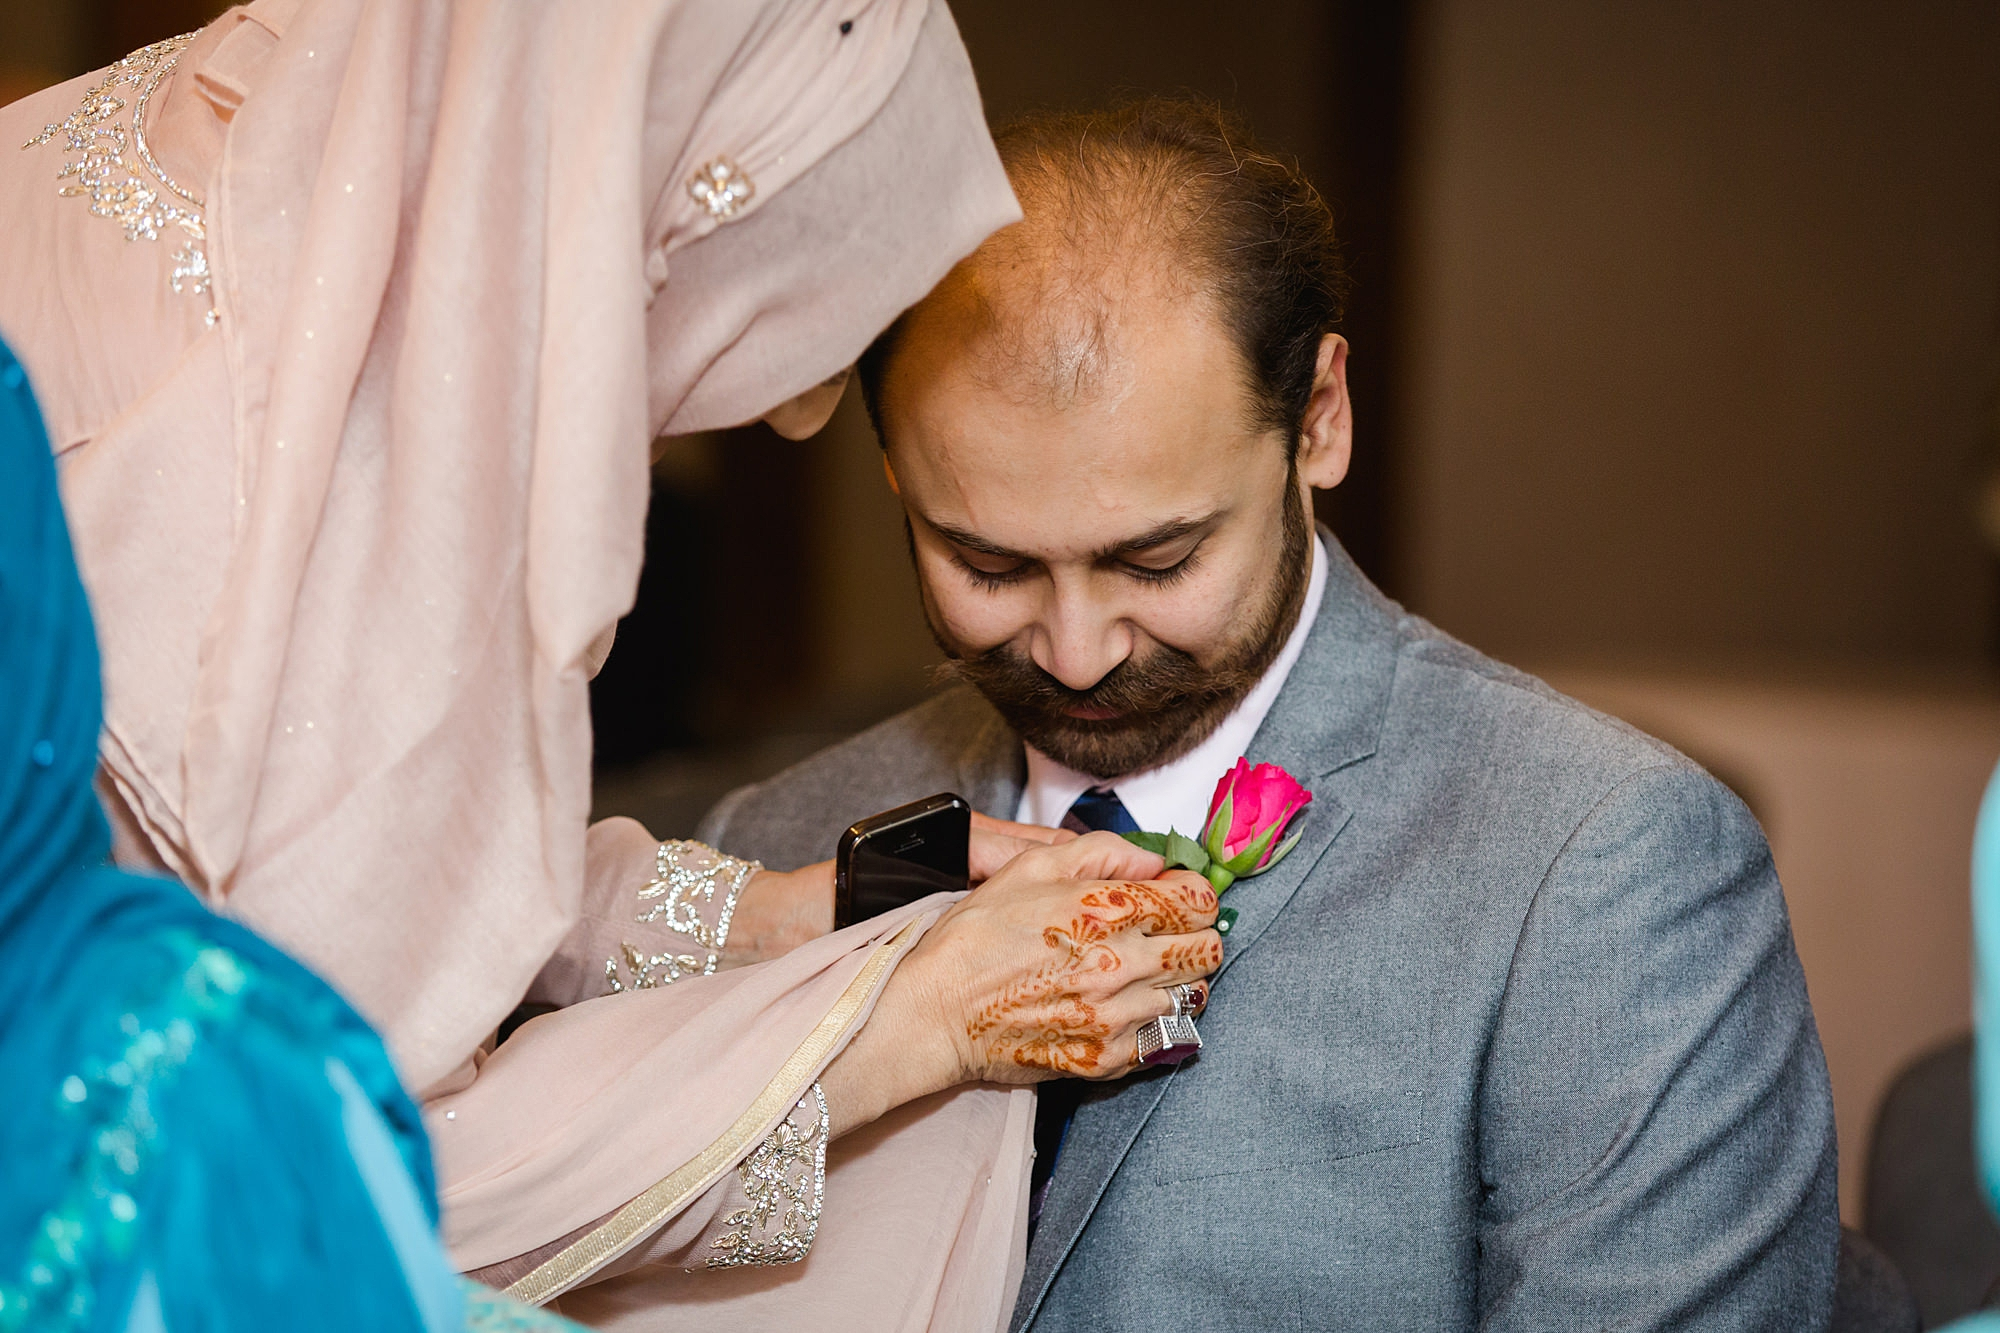 Richmond Hill Hotel wedding photography guest having buttonhole pinned